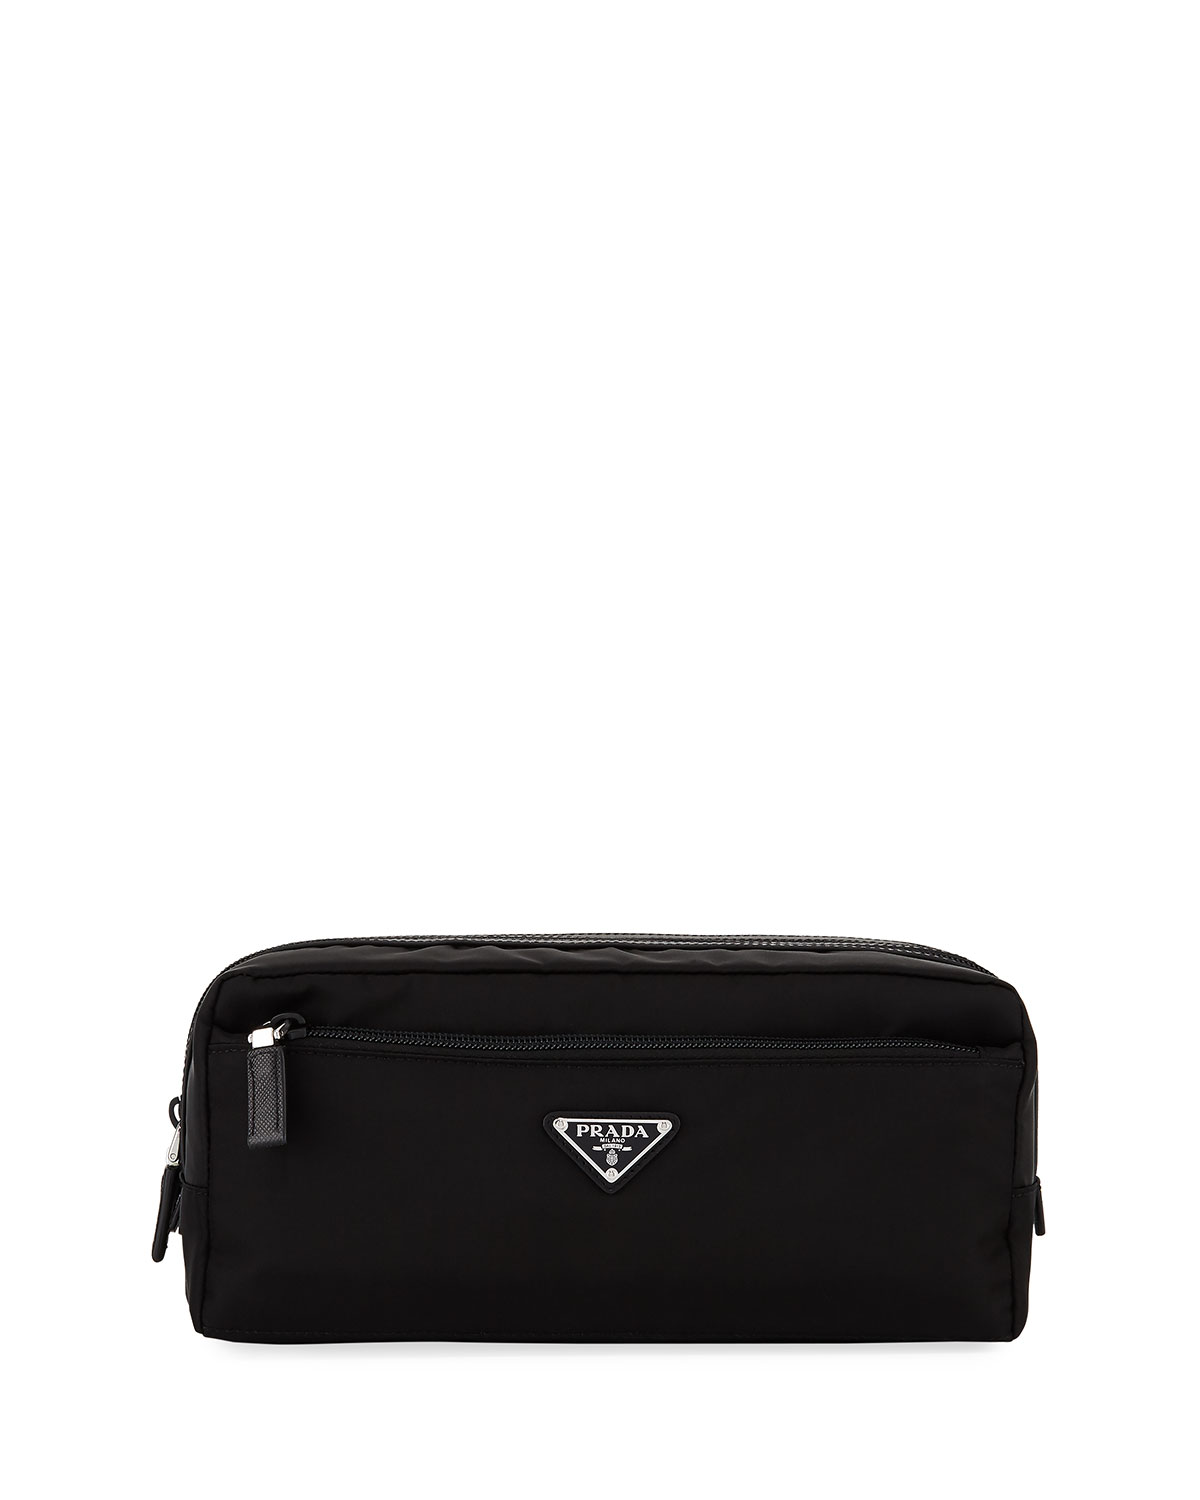 9d5e75663c54 Prada Nylon Double-Zip Toiletry Bag, Black | Neiman Marcus